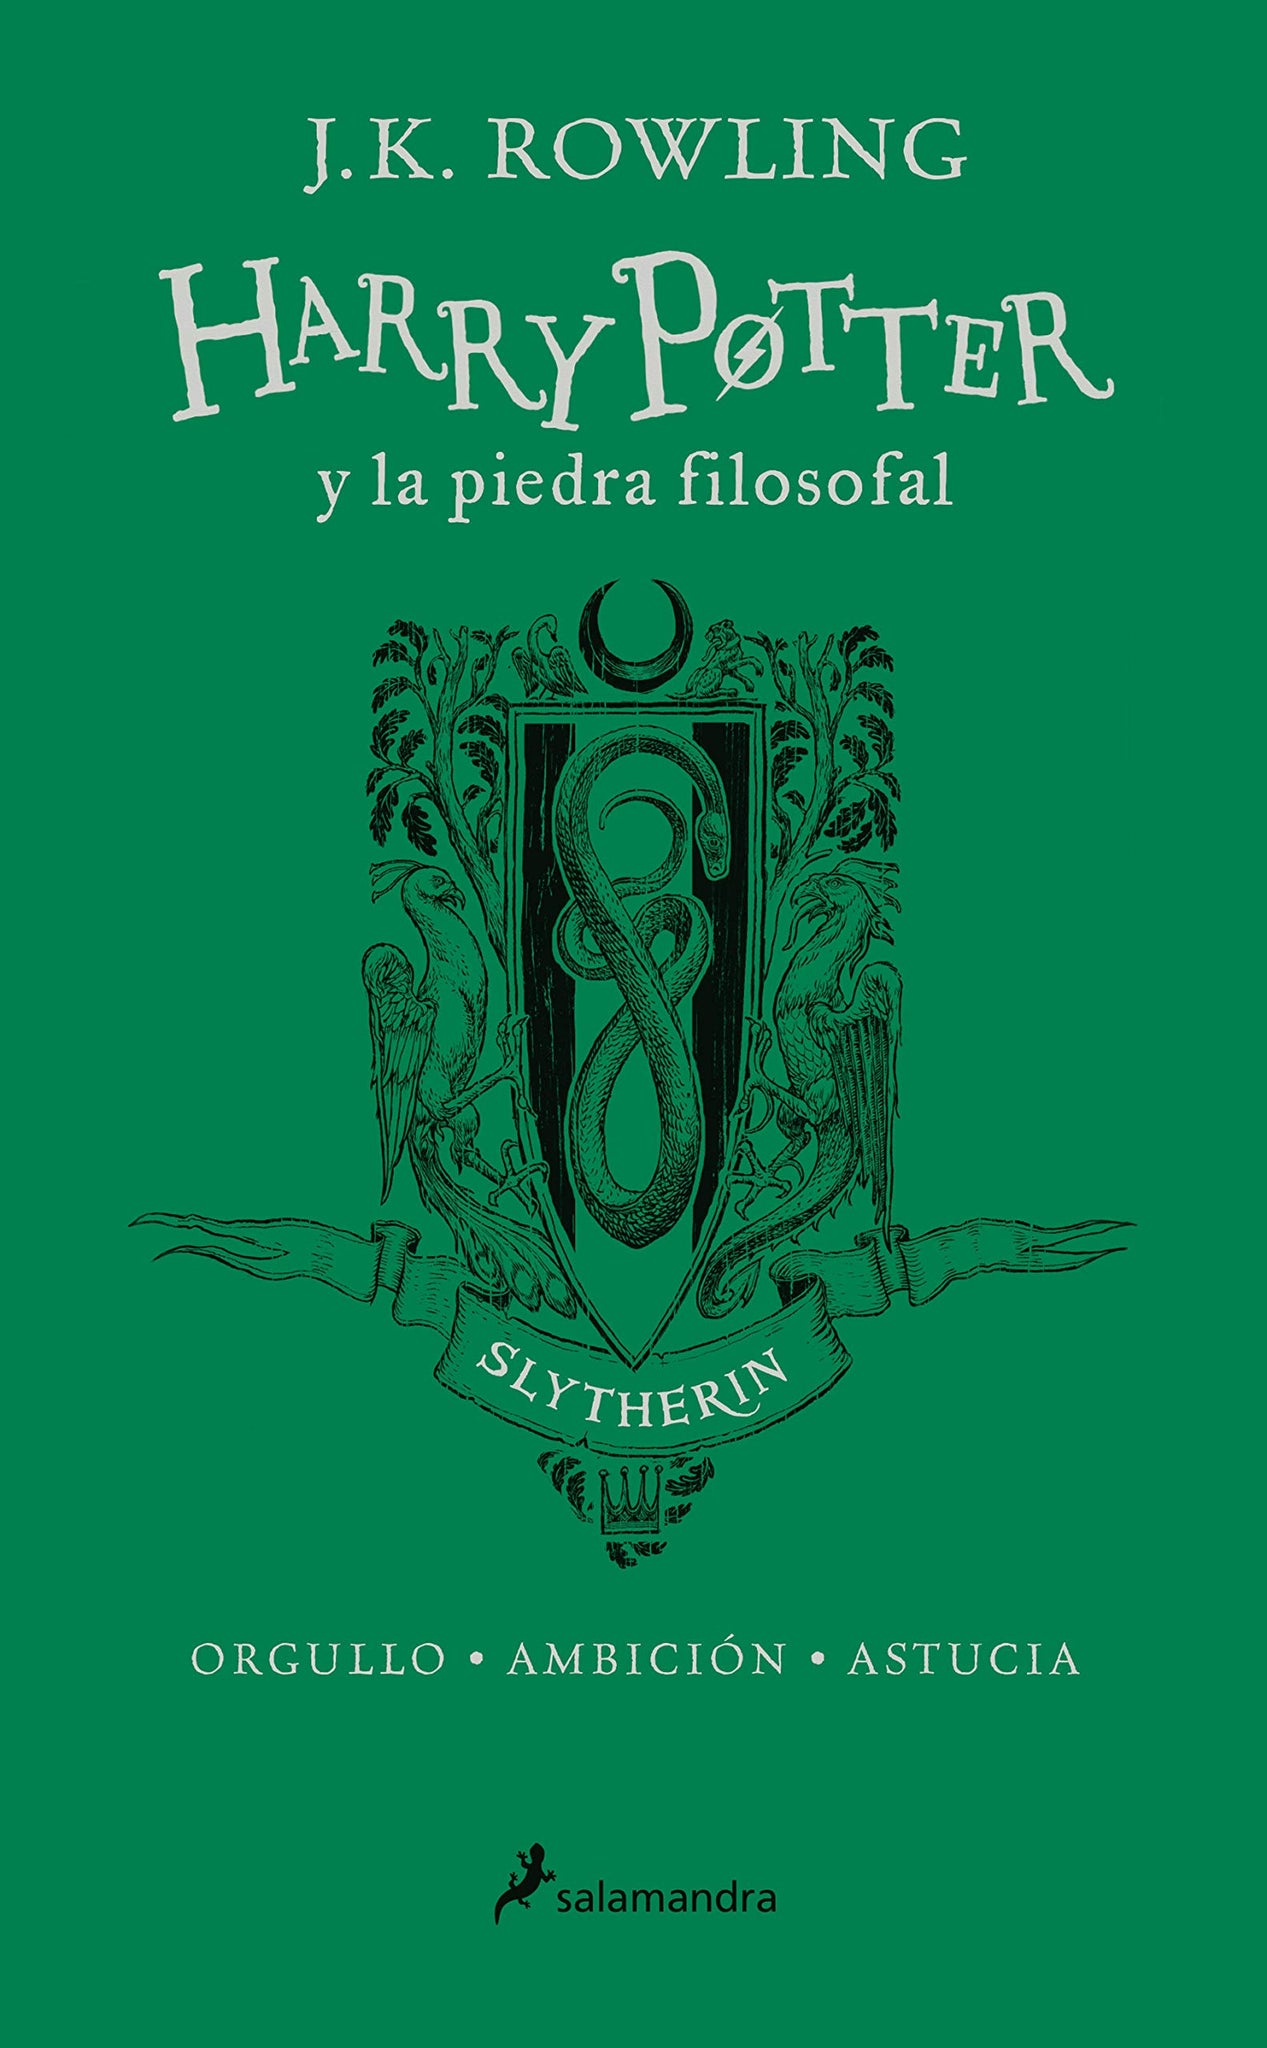 HARRY POTTER Y LA PIEDRA FILOSOFAL ( CASA SLYTHERIN)